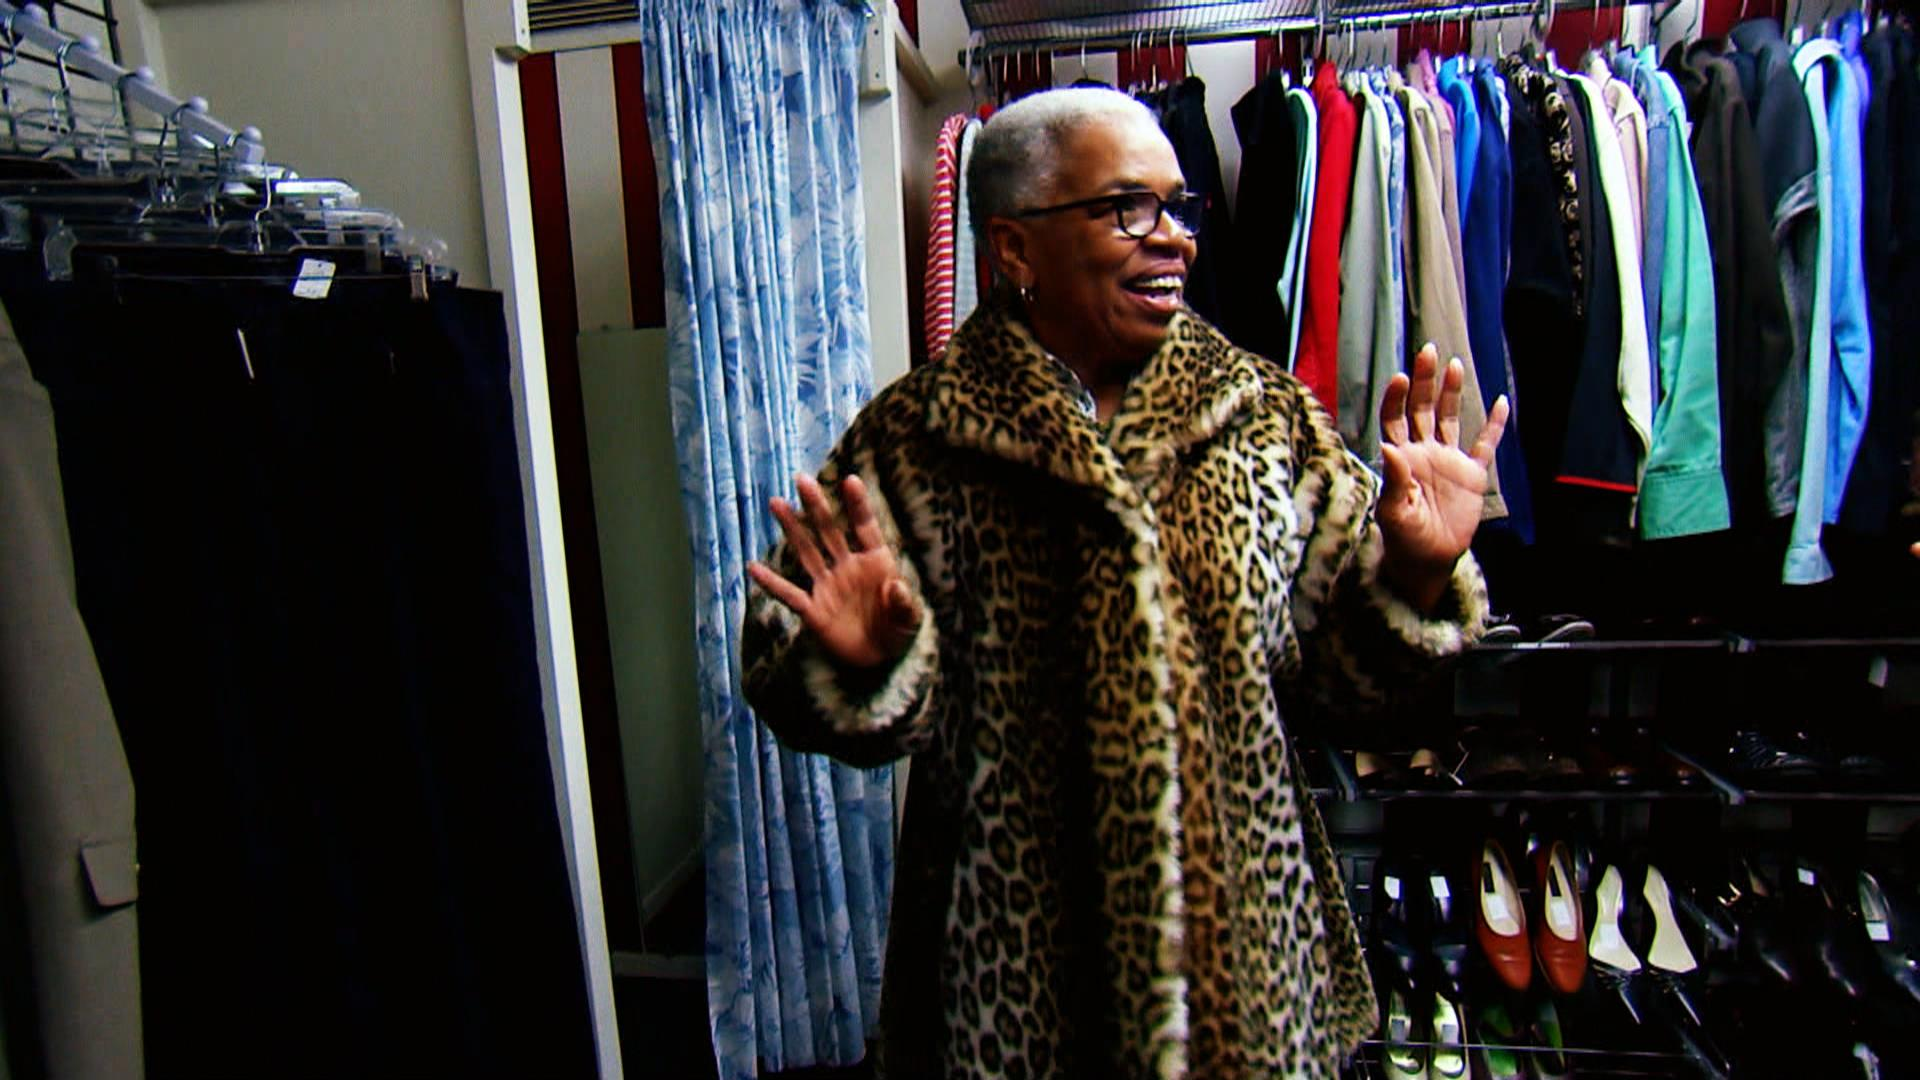 Meet the fashionista who helps older women stand out in style